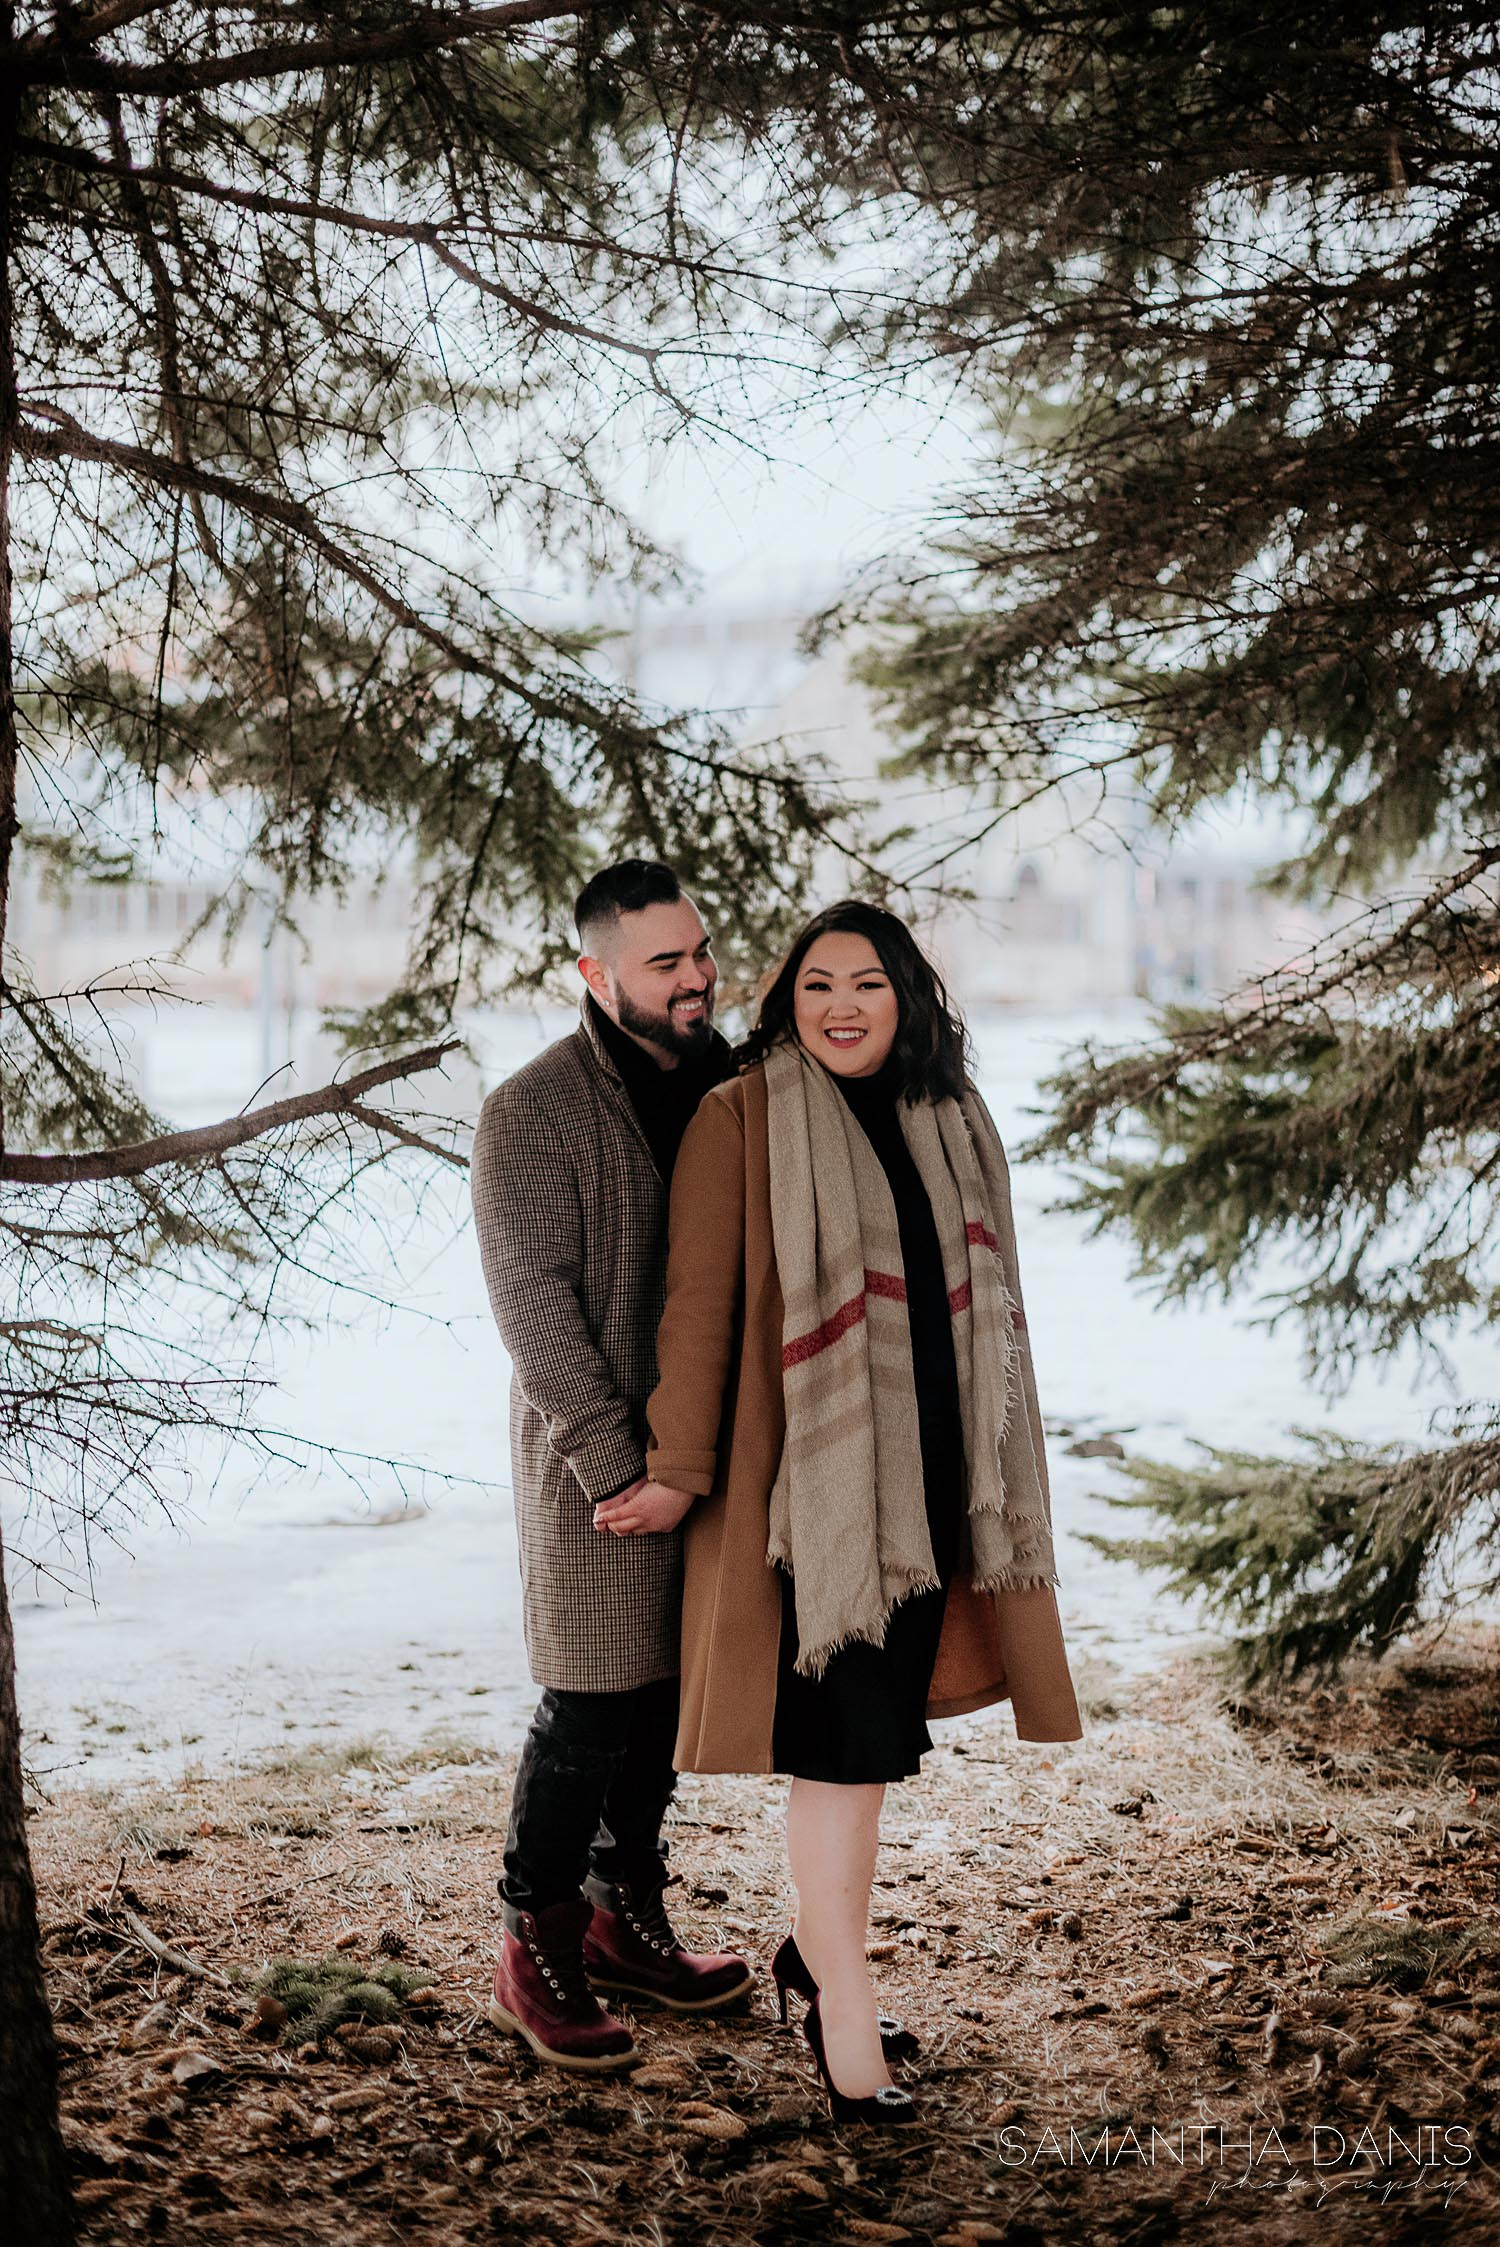 Couple holding hands and laughing under tree cover at Lansdowne Park. Groom looking at his fiancé while she looks at the camera and smiles.